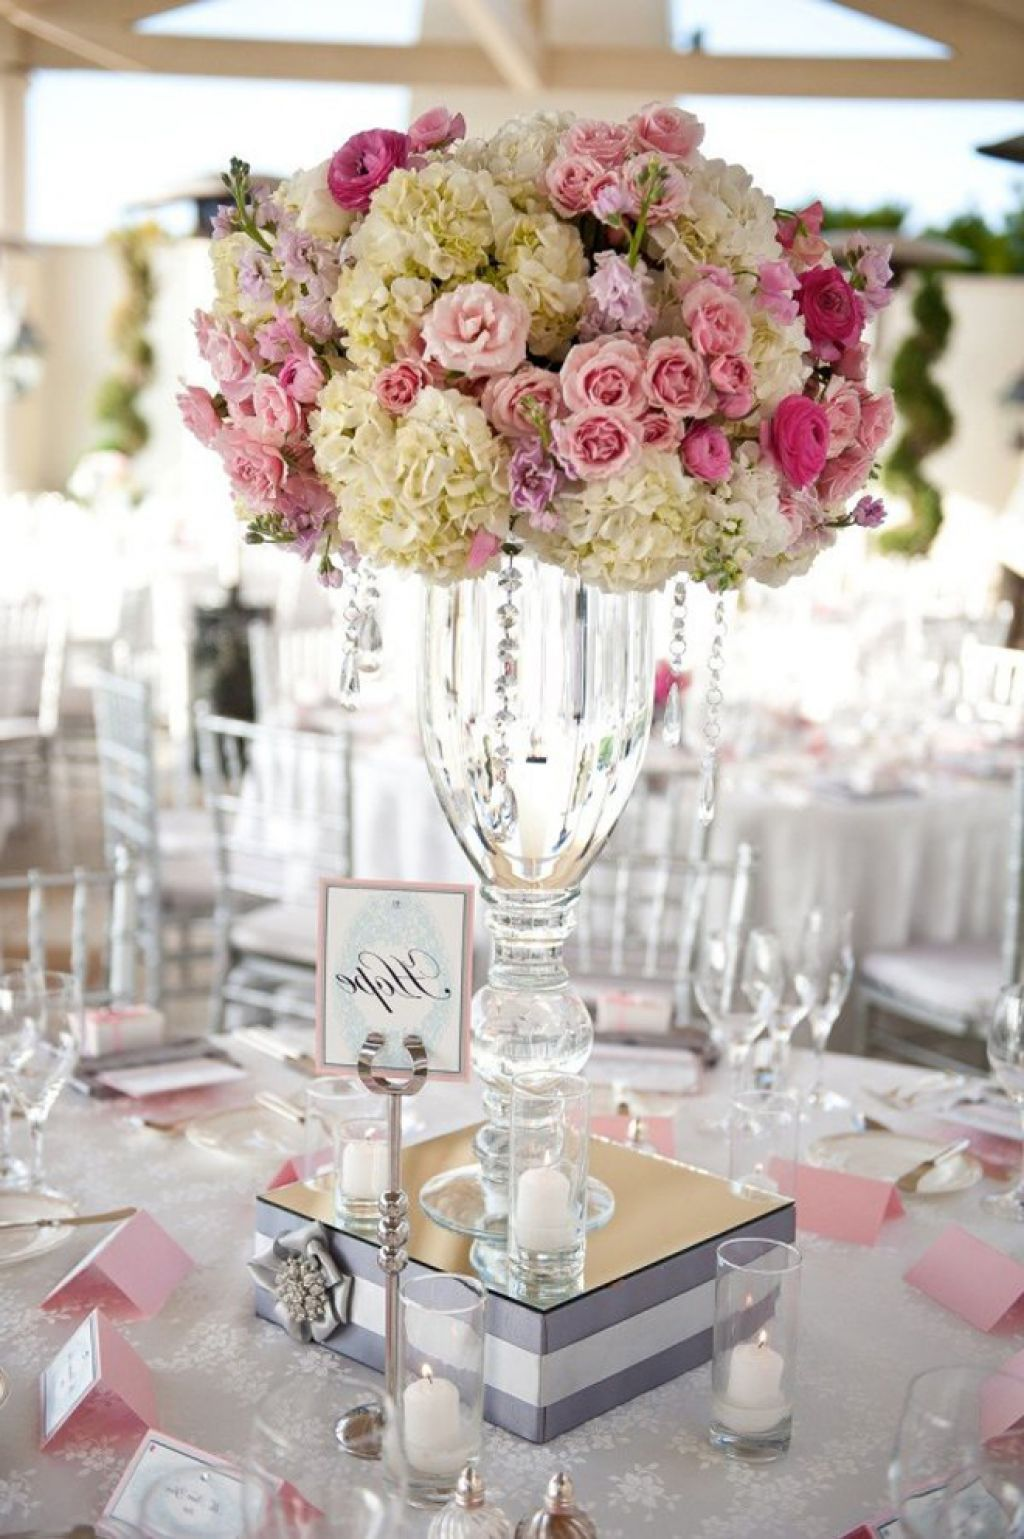 Wedding Centerpiece Ideas | Flower arrangements | Pinterest ...